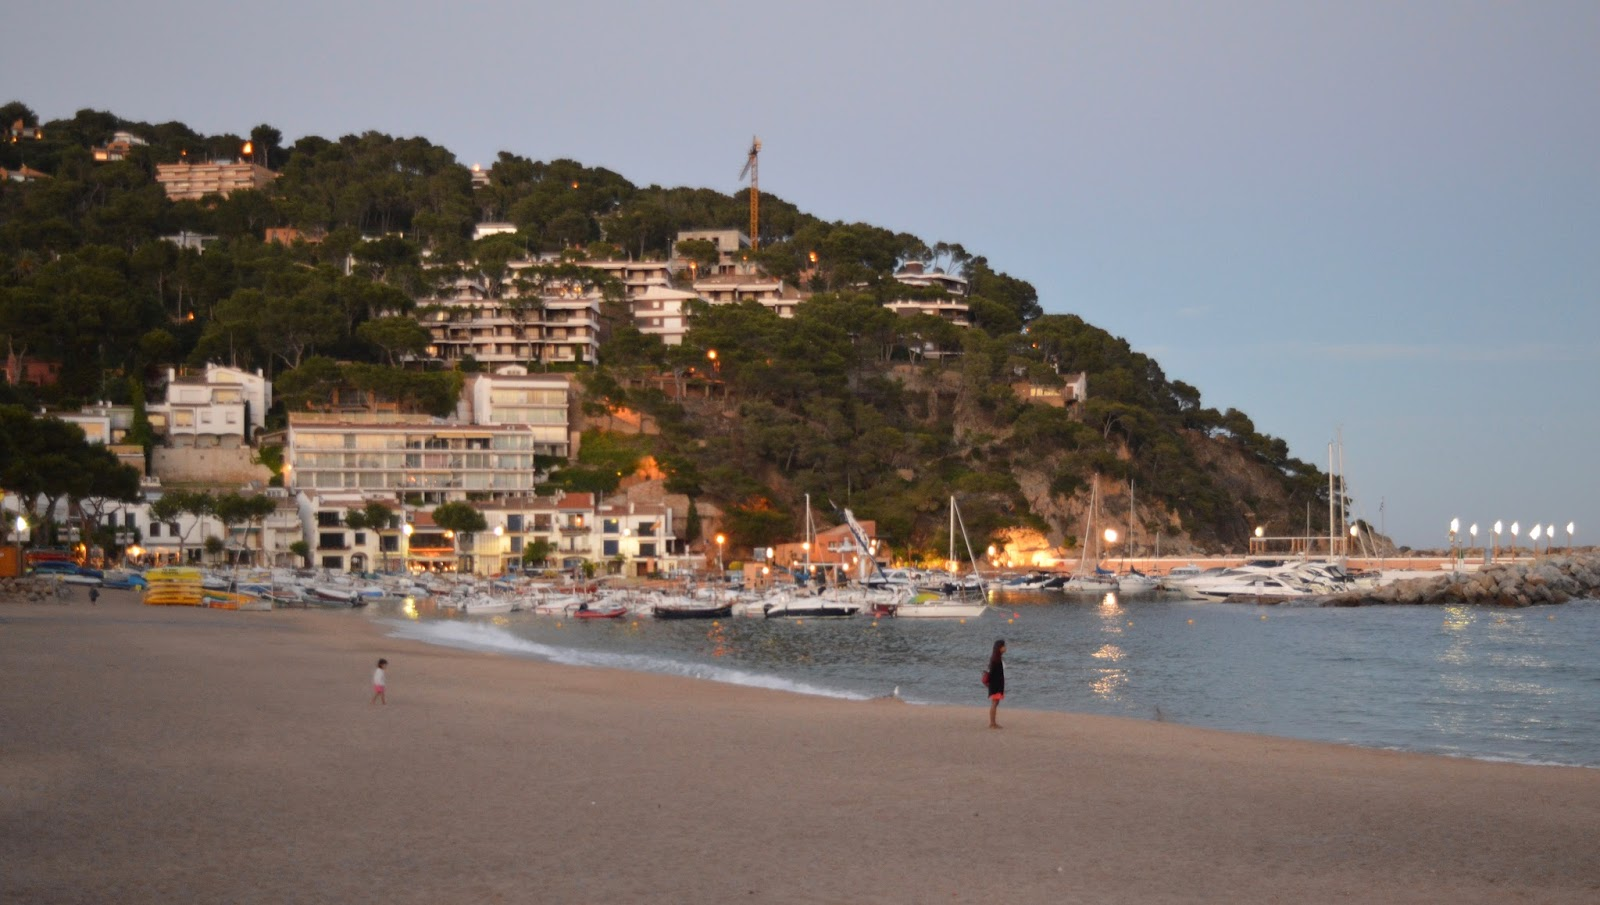 A walk from Calella de Palafrugell to Llafranc - beach